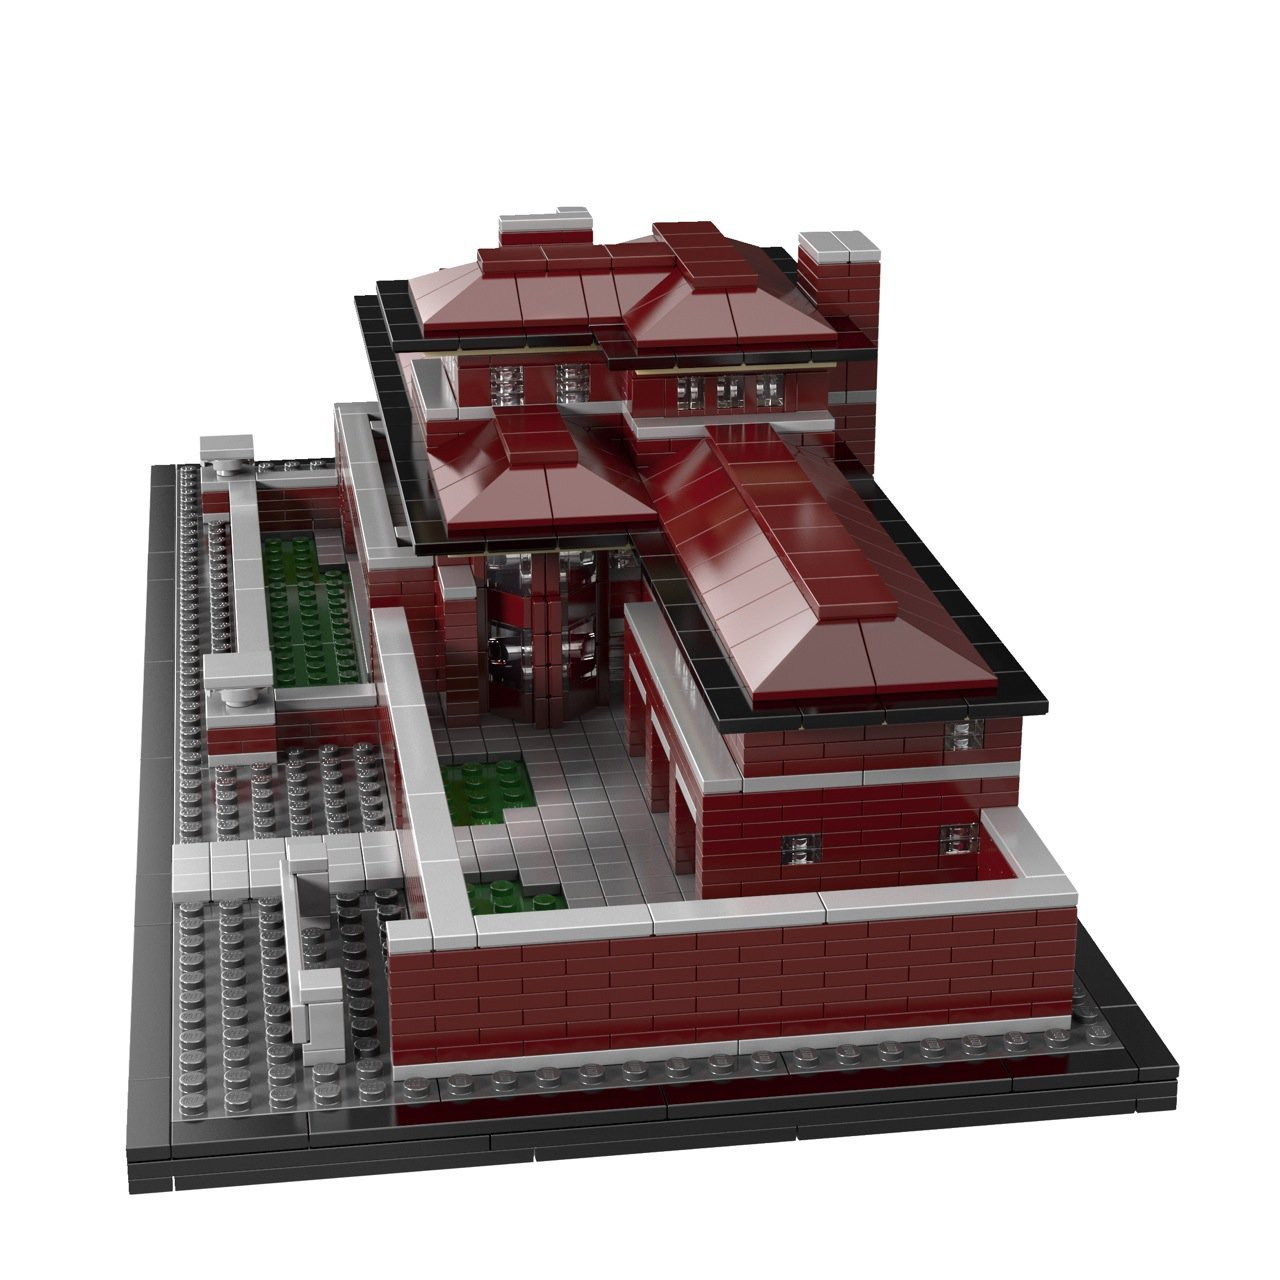 And the newest addition to LEGO Architecture isFrank